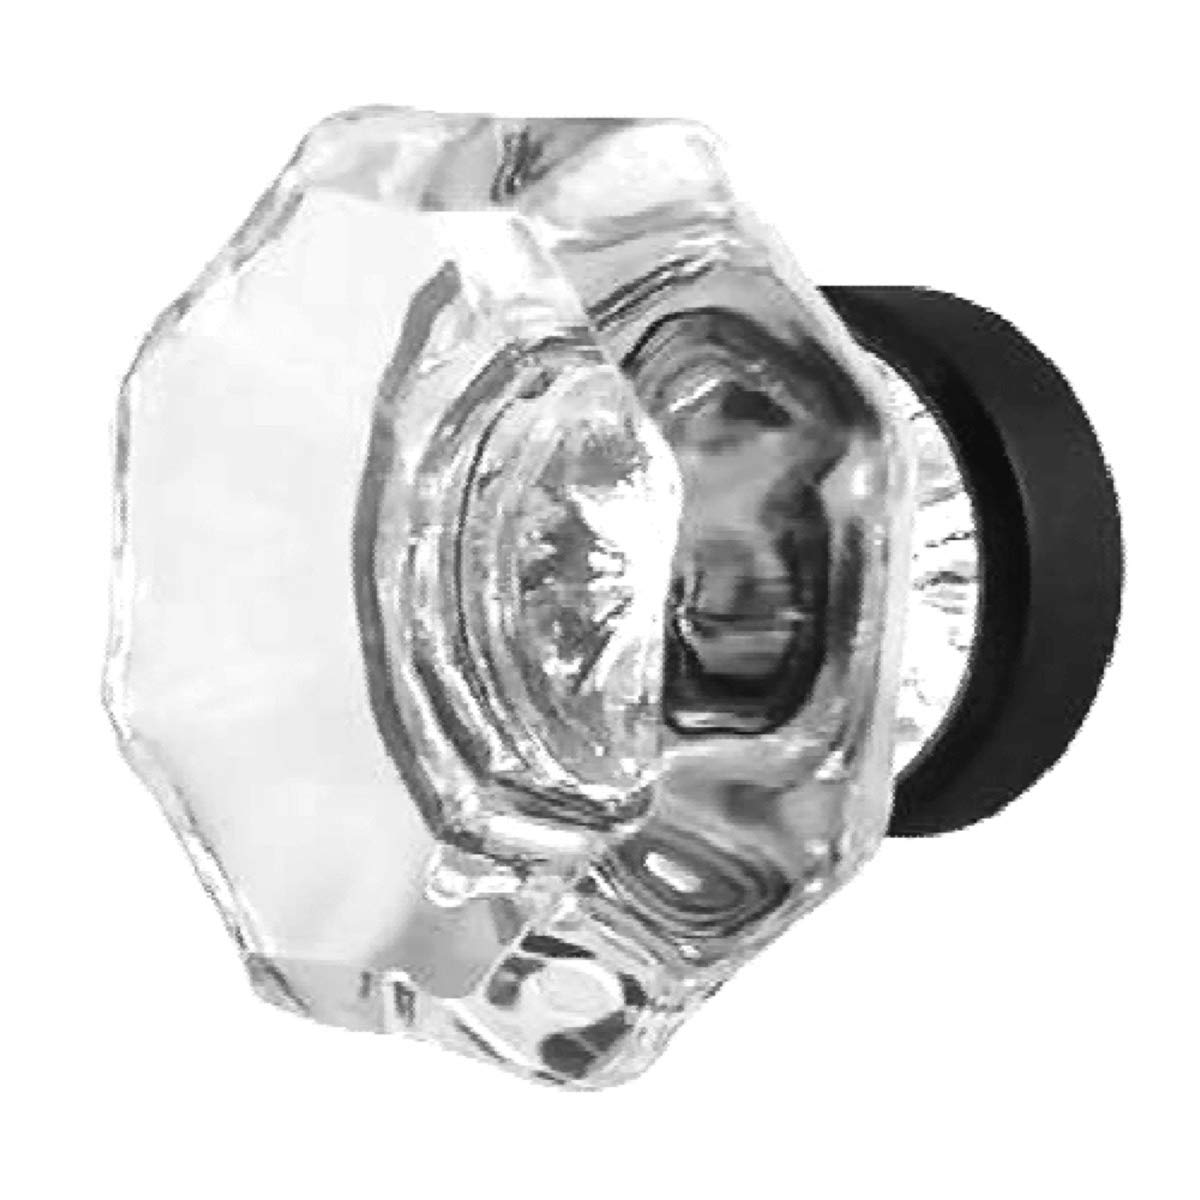 Cute Crystal Knobs Bedroom Cabinet Pulls Vanity Drawer Handles 6 Pack T105VF Clear Glass Octagon Knob with Oil Rubbed Hardware. Romantic Decor & More.